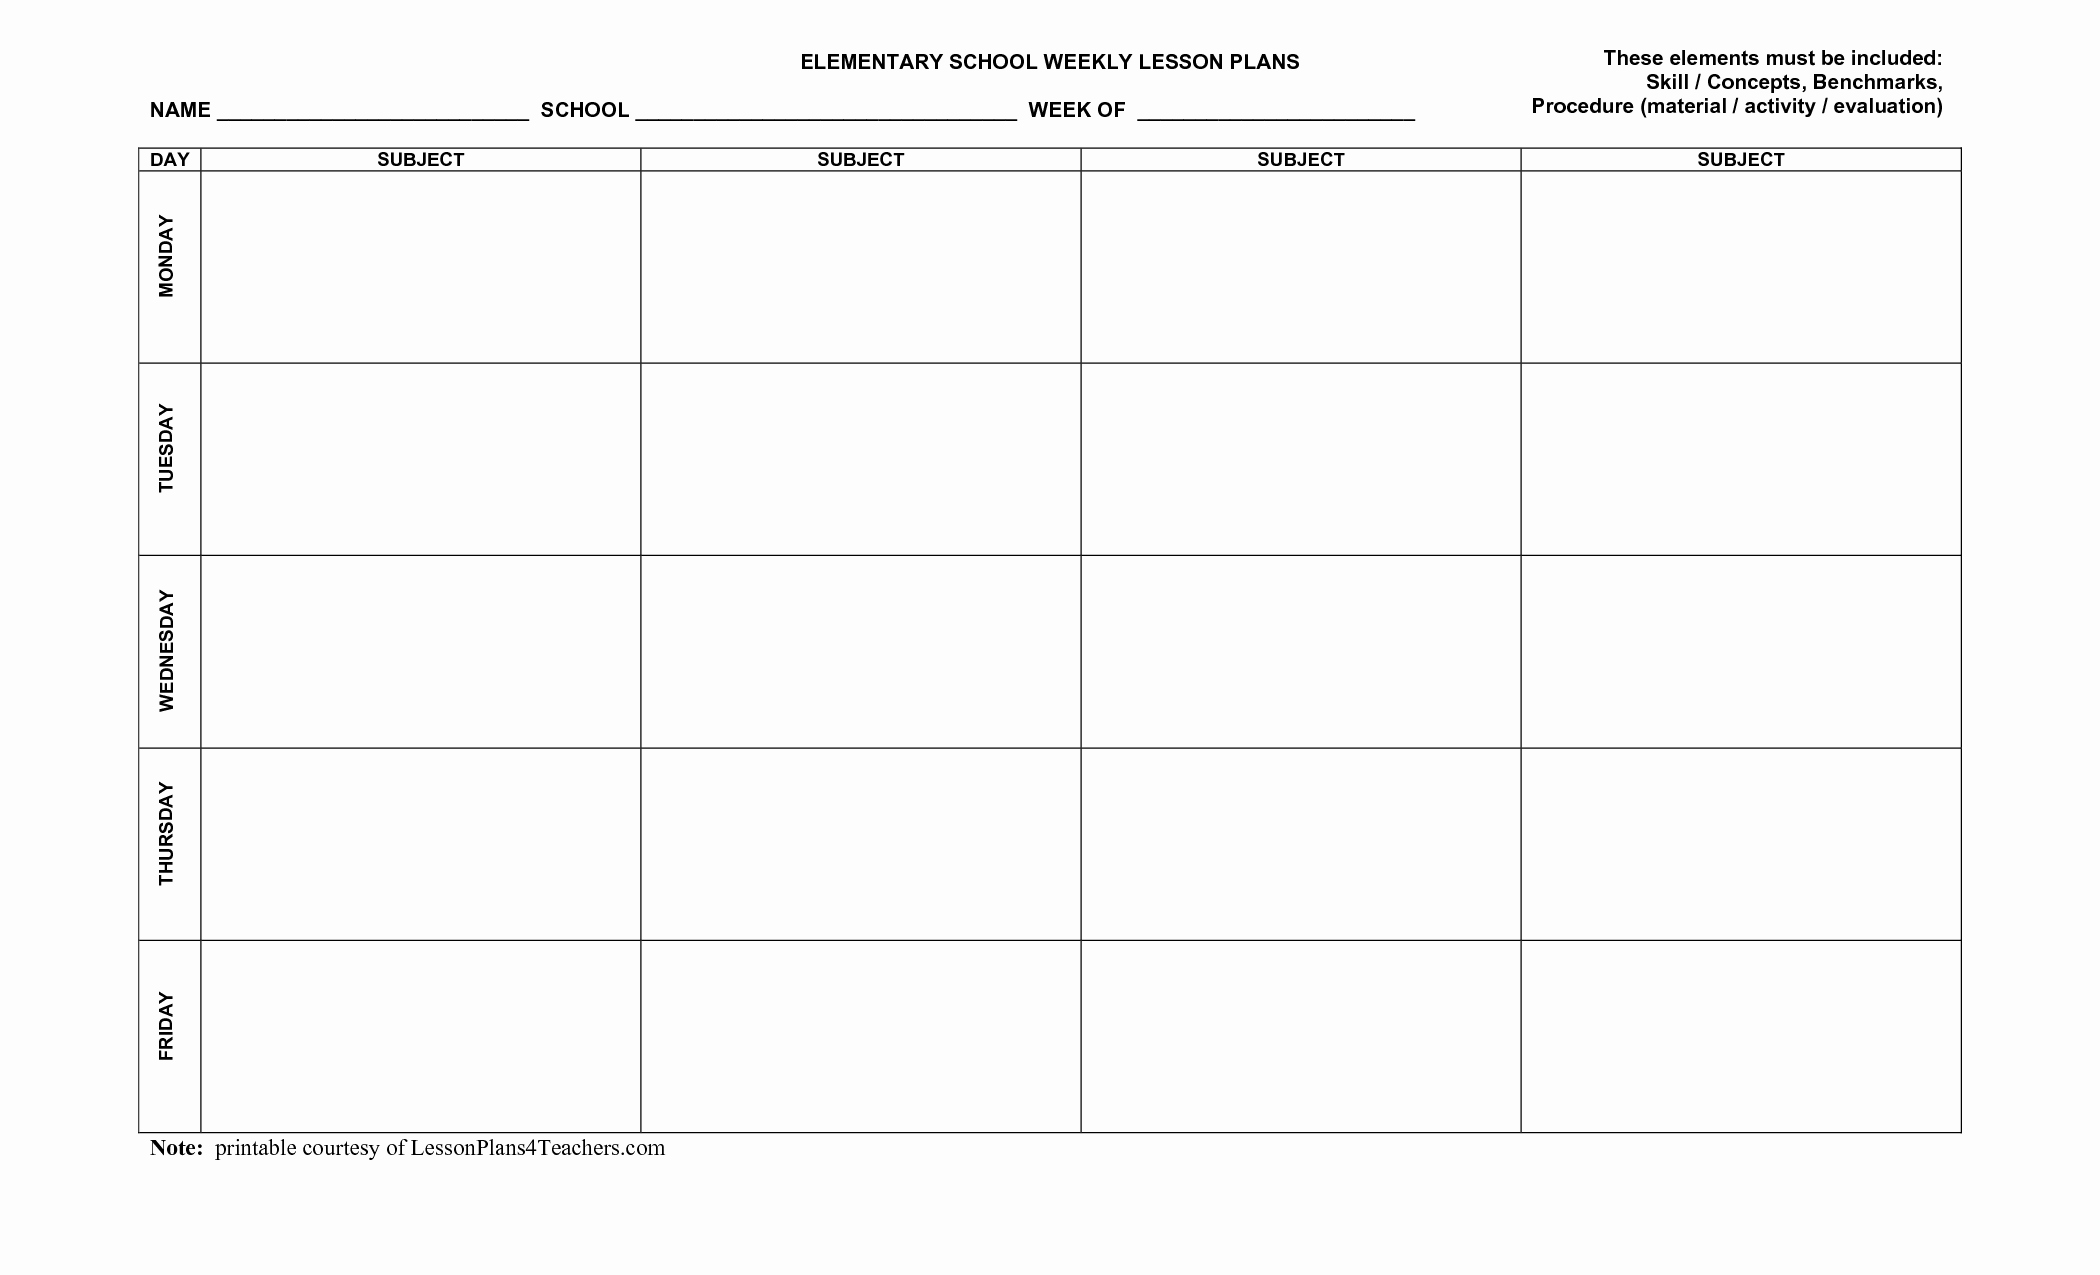 Weekly Lesson Plan Templates Elementary Awesome Use This Blank 8 Part Lesson Plan Template Every Time that